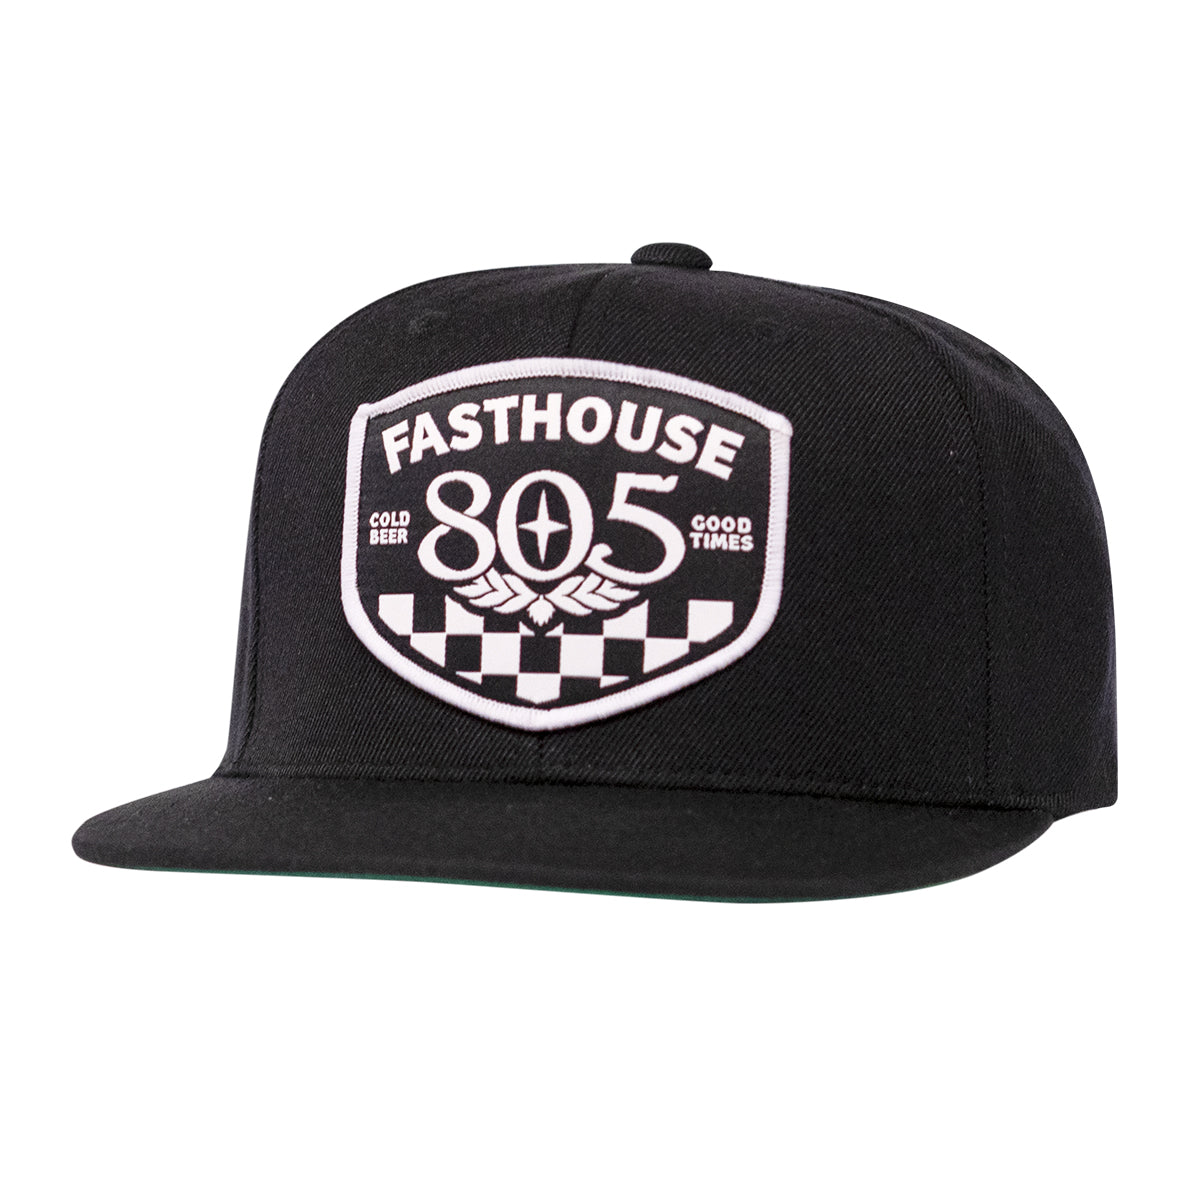 Fasthouse - 805 Pitstop Hat - Black